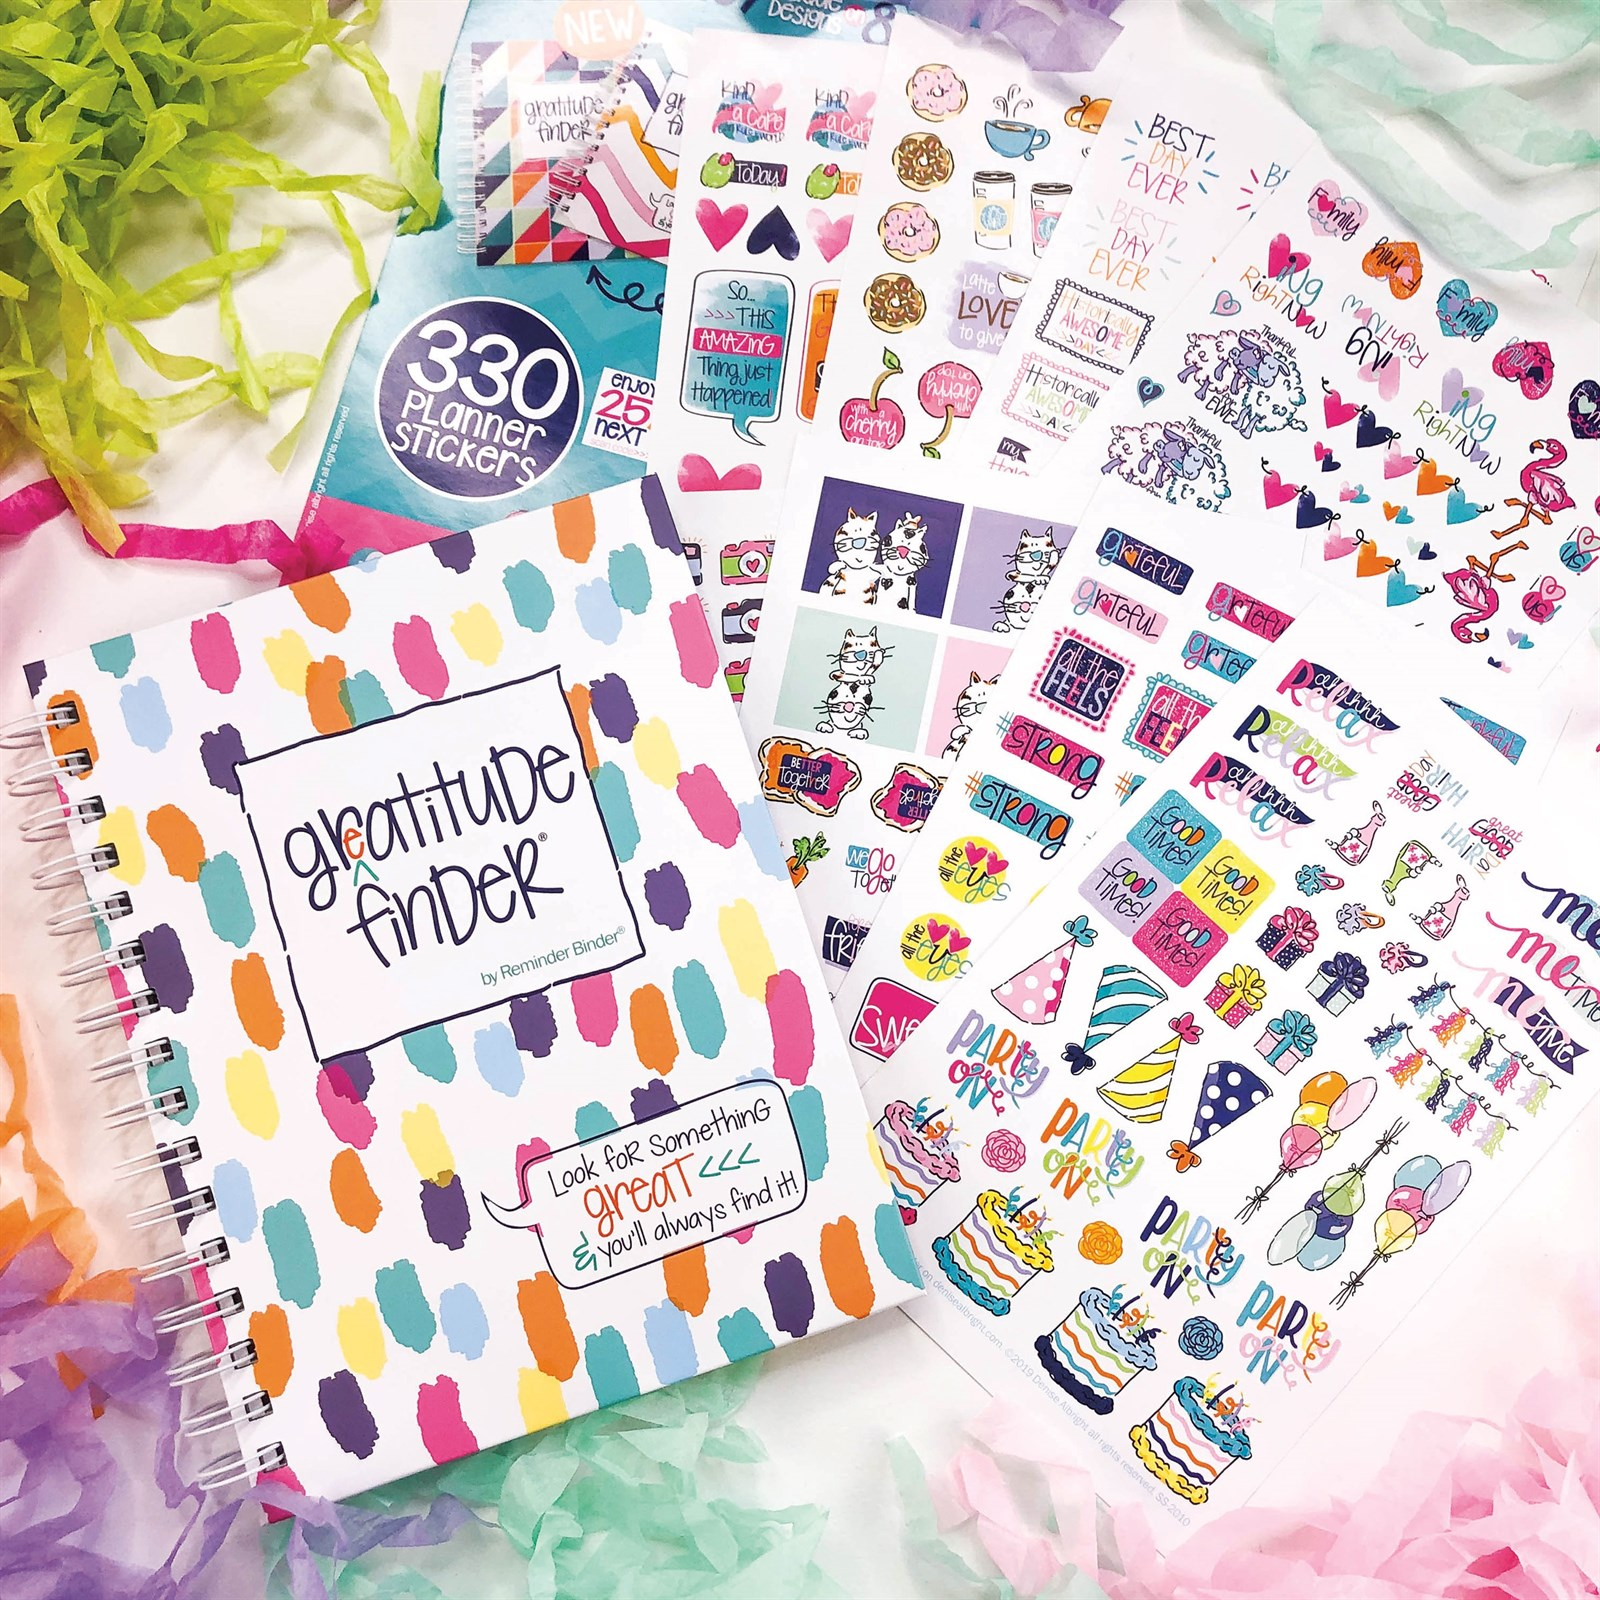 Gratitude Gift Set Including Journal + Stickers Only $14.95 w/ Free Shipping (Was $25)